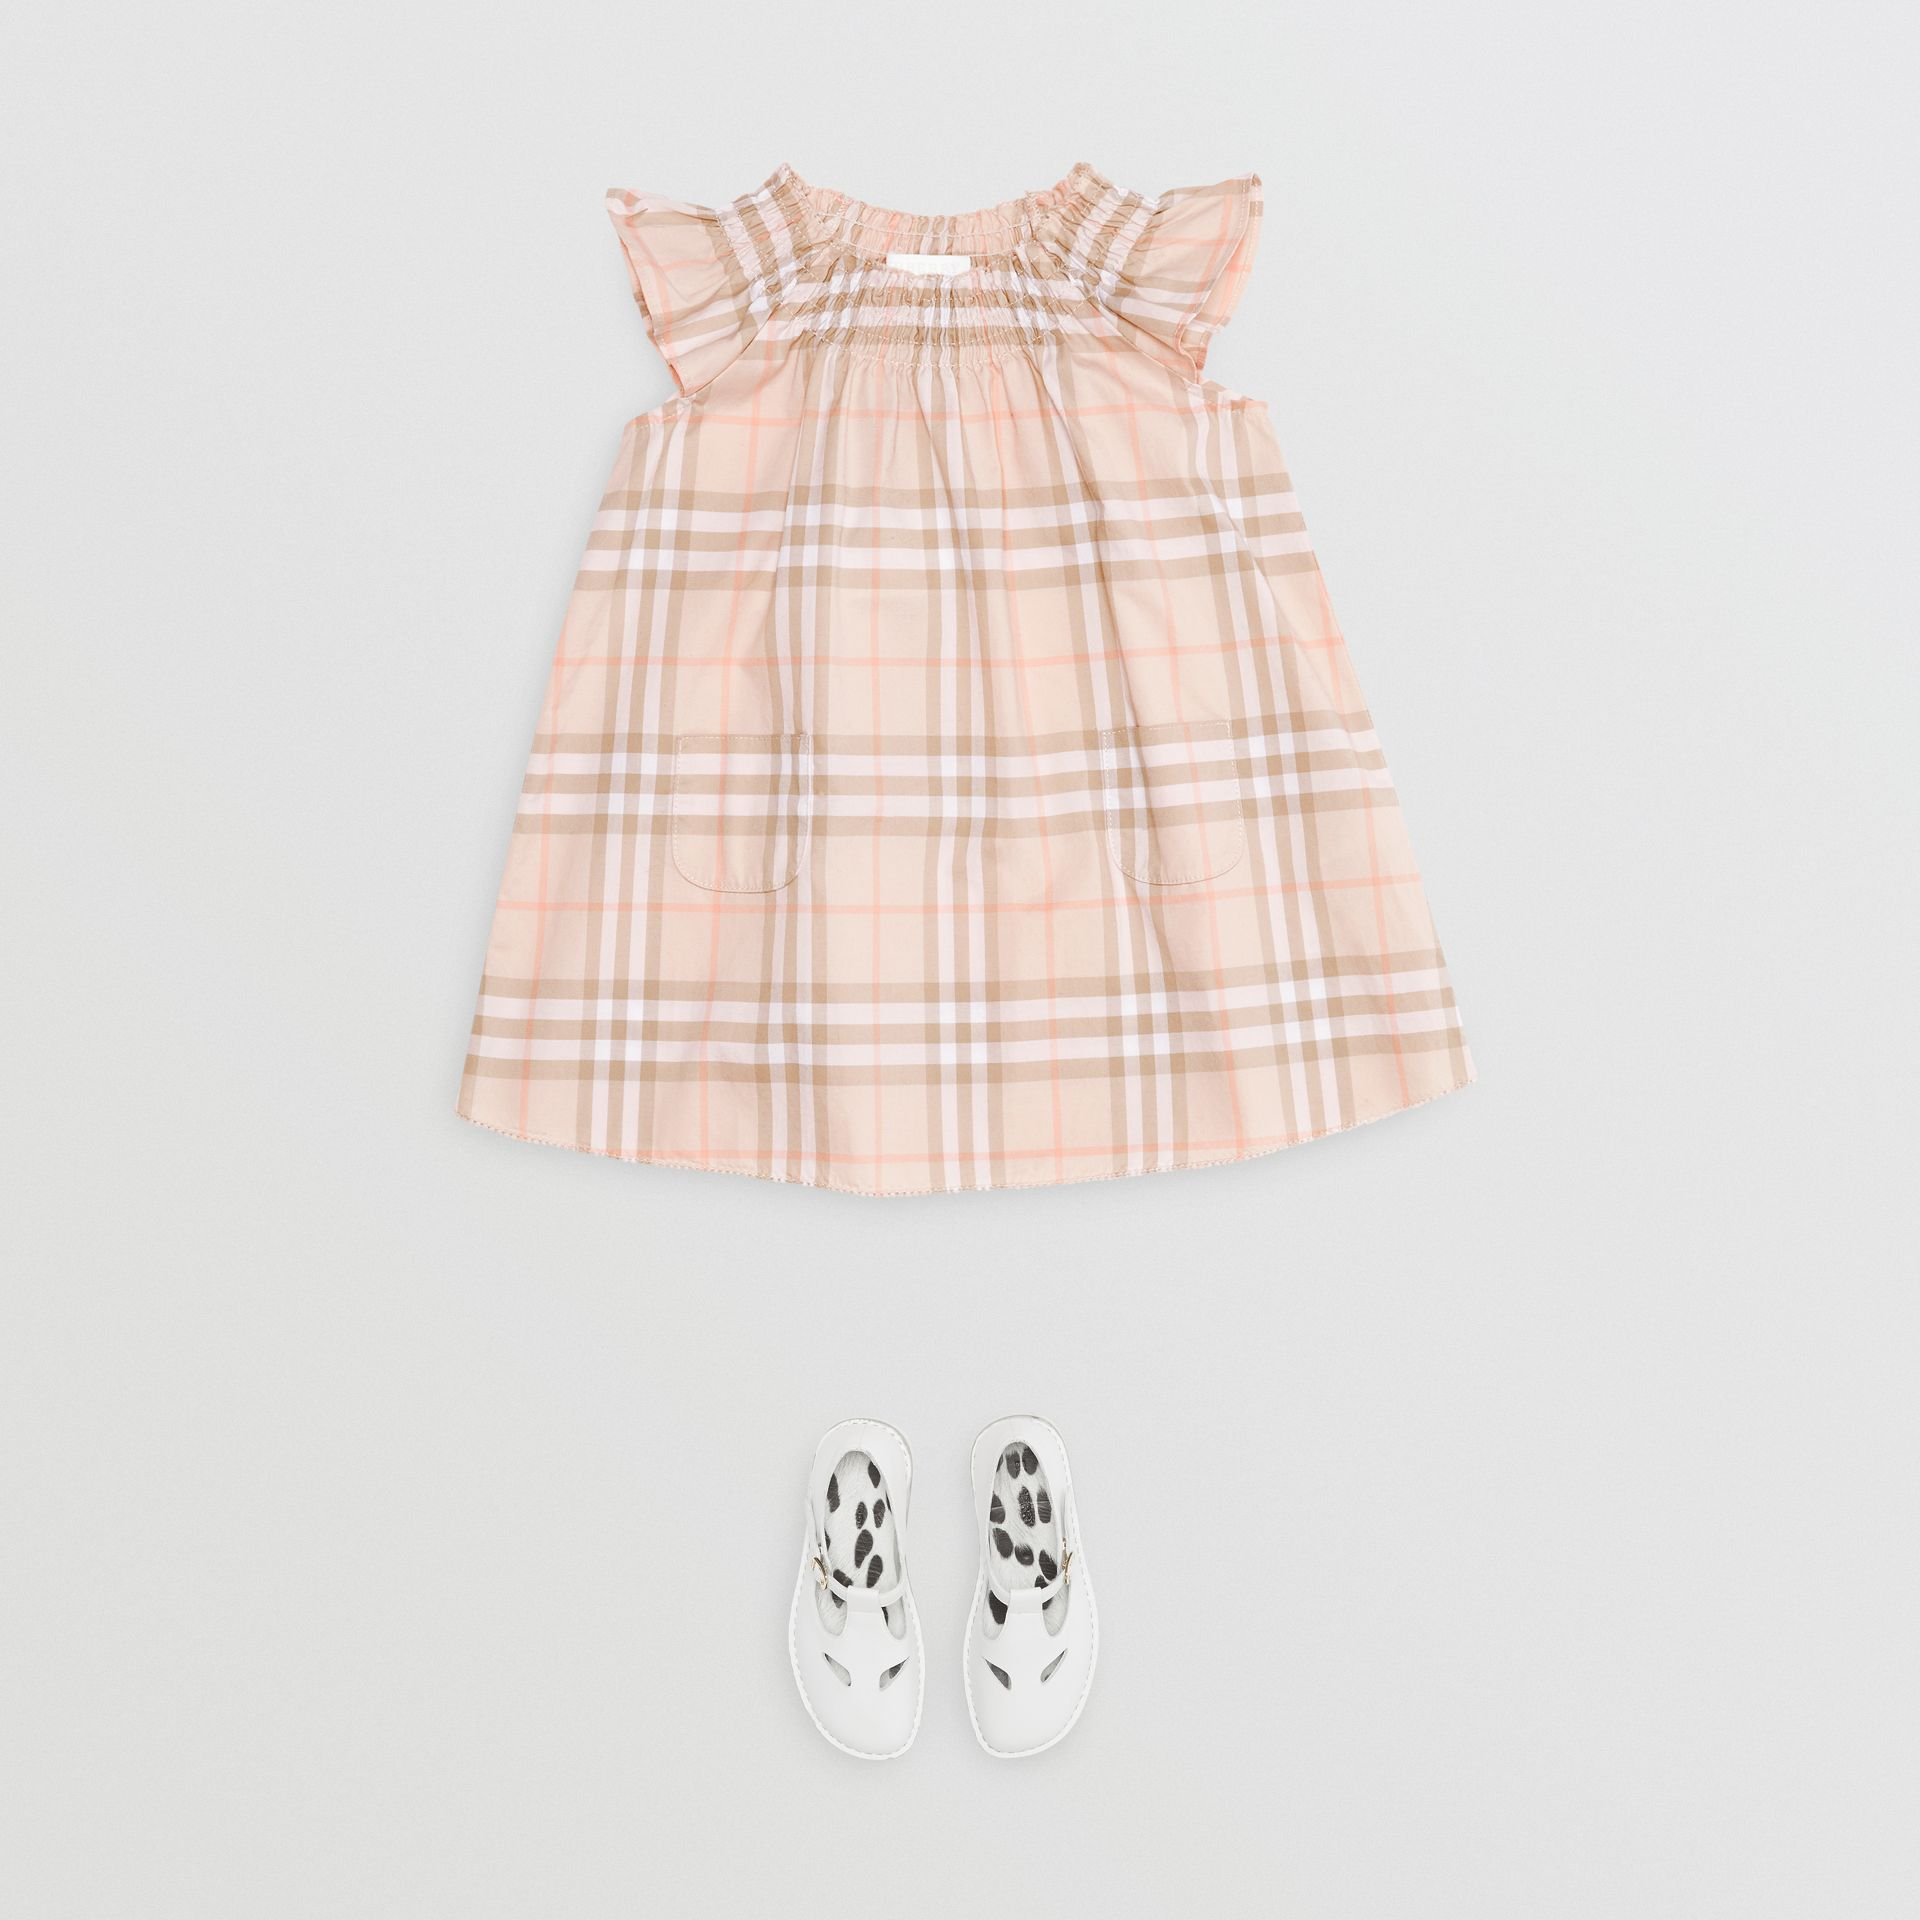 Smocked Vintage Check Cotton Dress in Pale Pink Apricot - Children | Burberry United States - gallery image 2